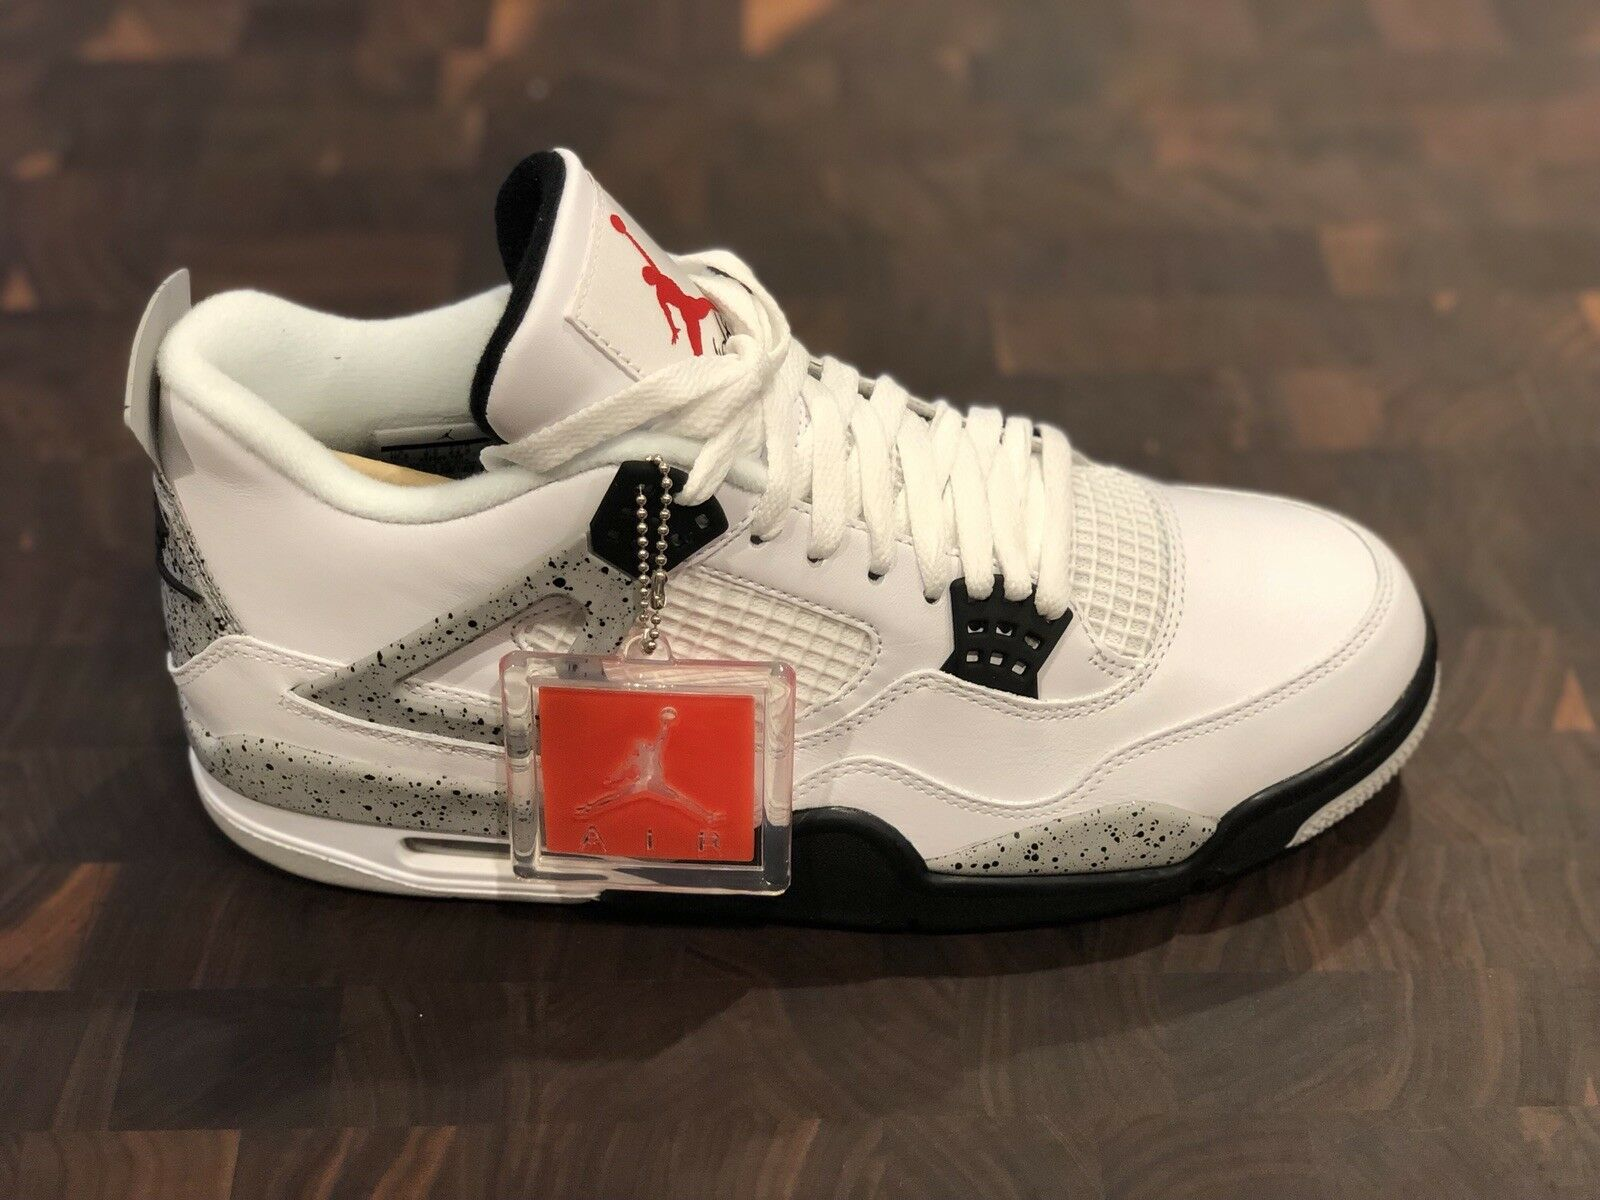 nike air jordan retro 4 white cement Size 10.5 With Receipt 2018 OG 840606-192